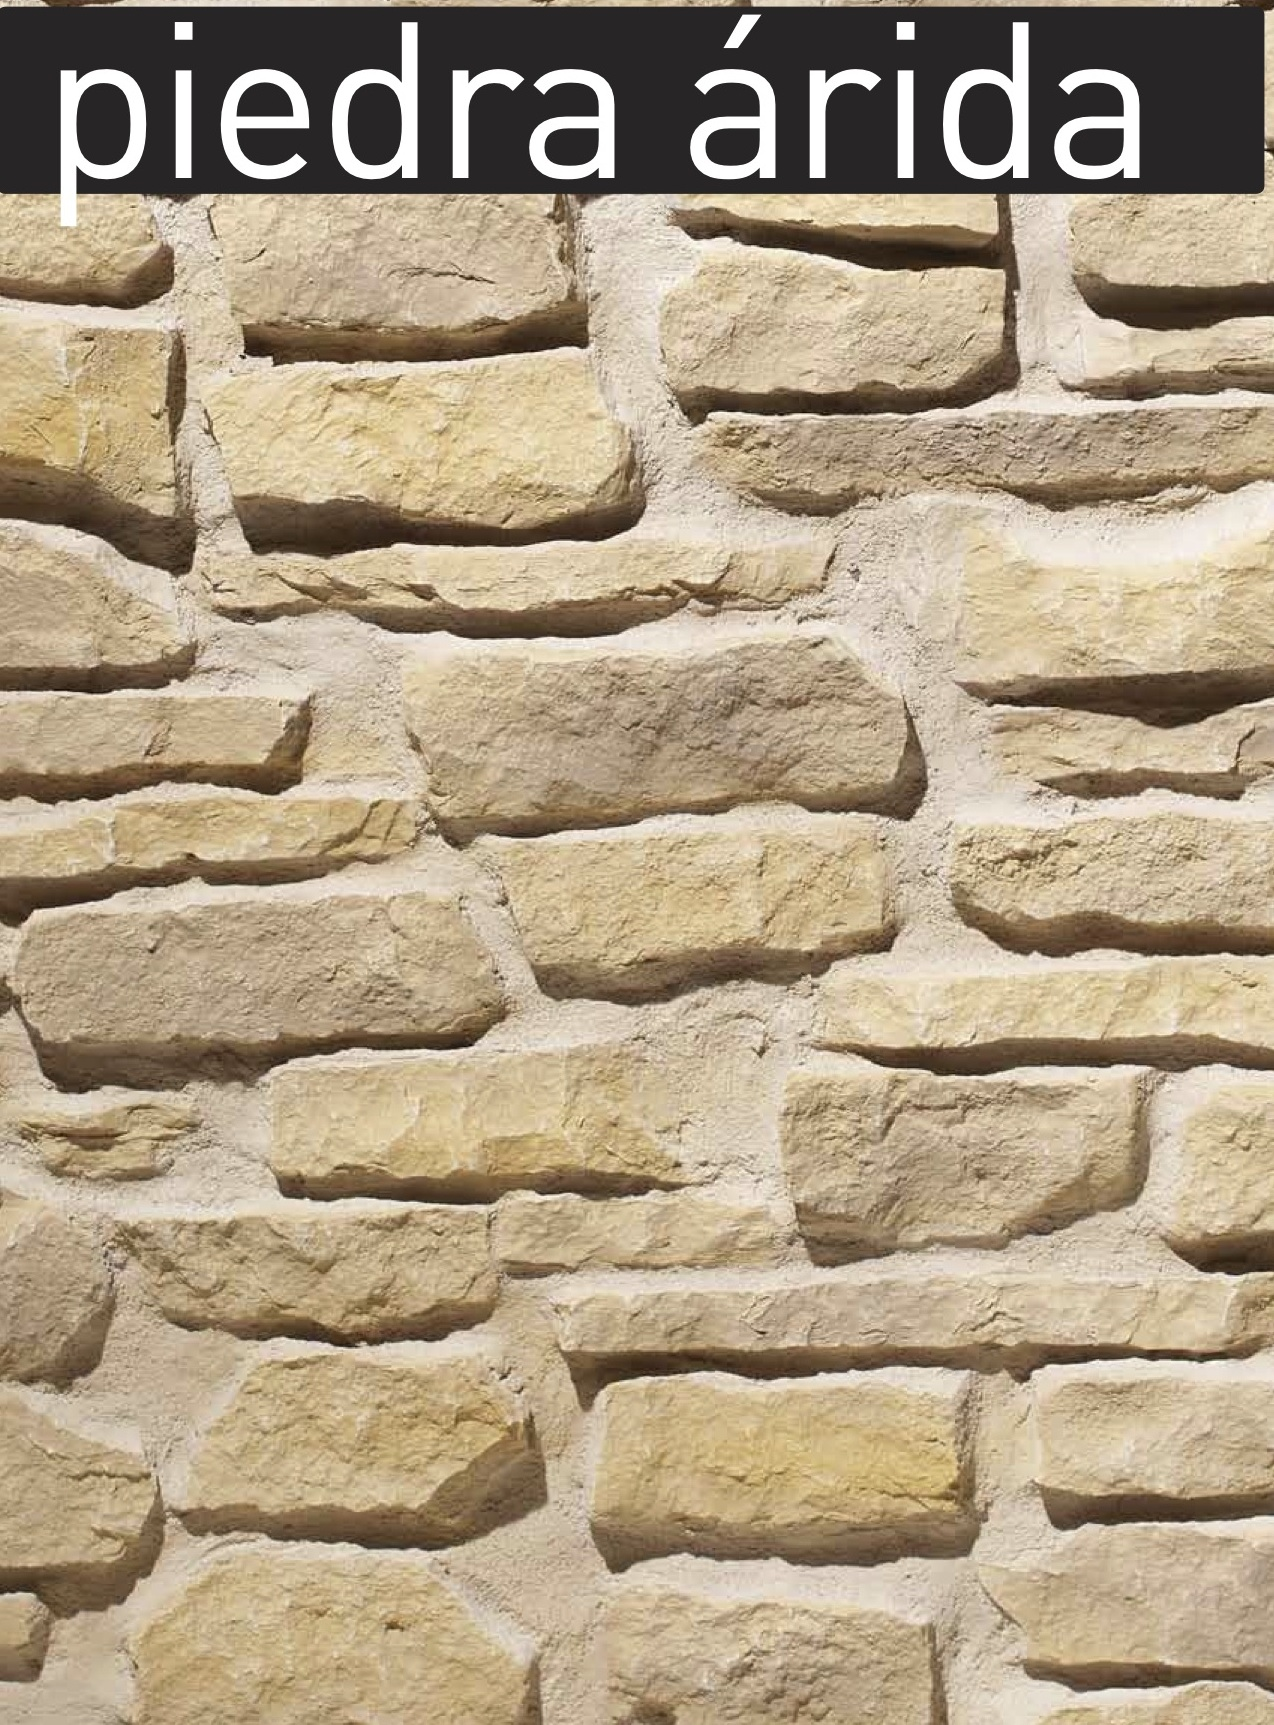 Stone Sheets For Walls : Faux stone wall panels dreamwall wallcoverings with a